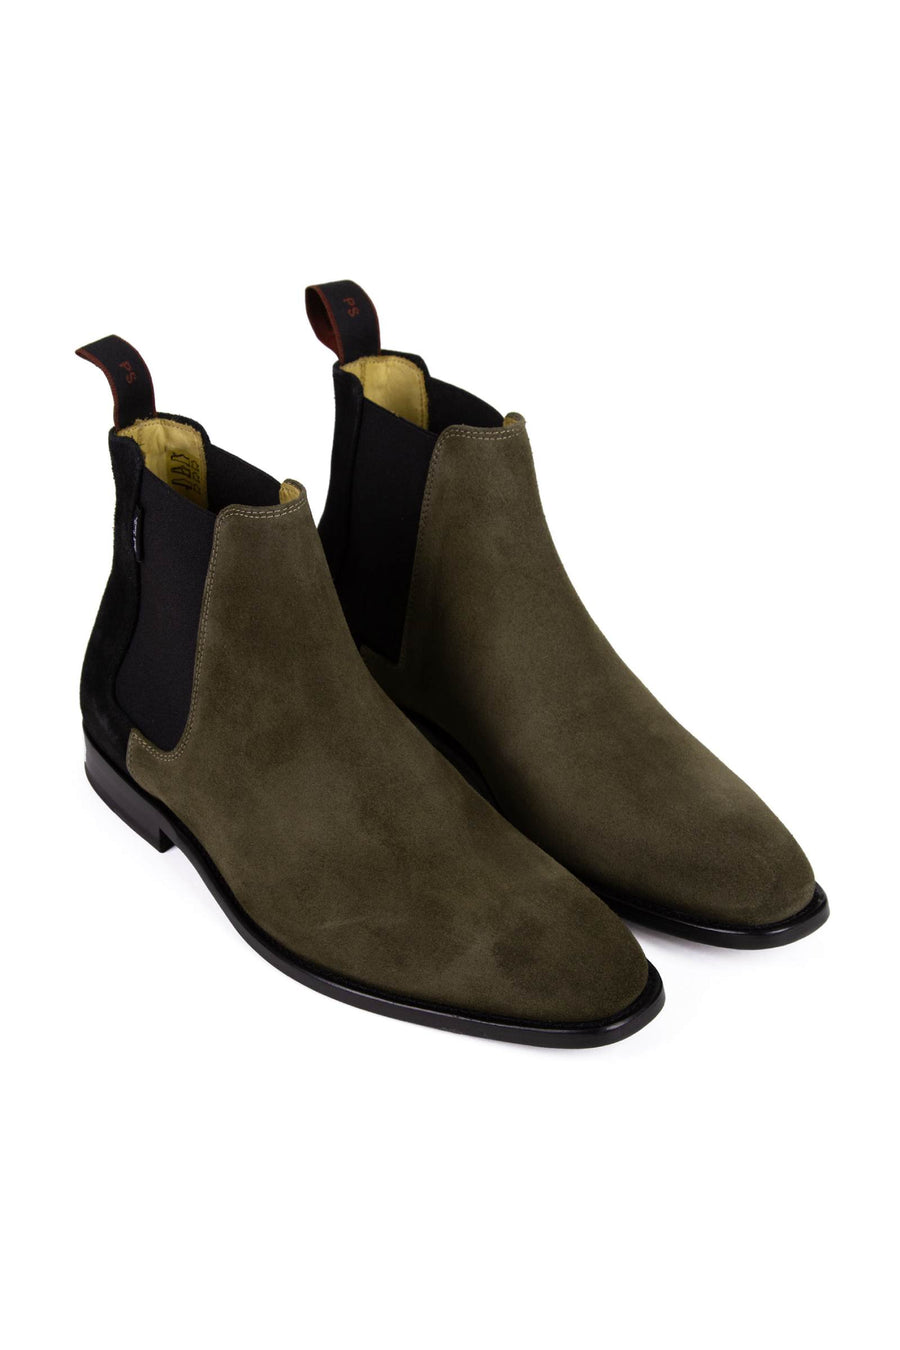 PAUL SMITH BOOT 'GERALD' SUEDE